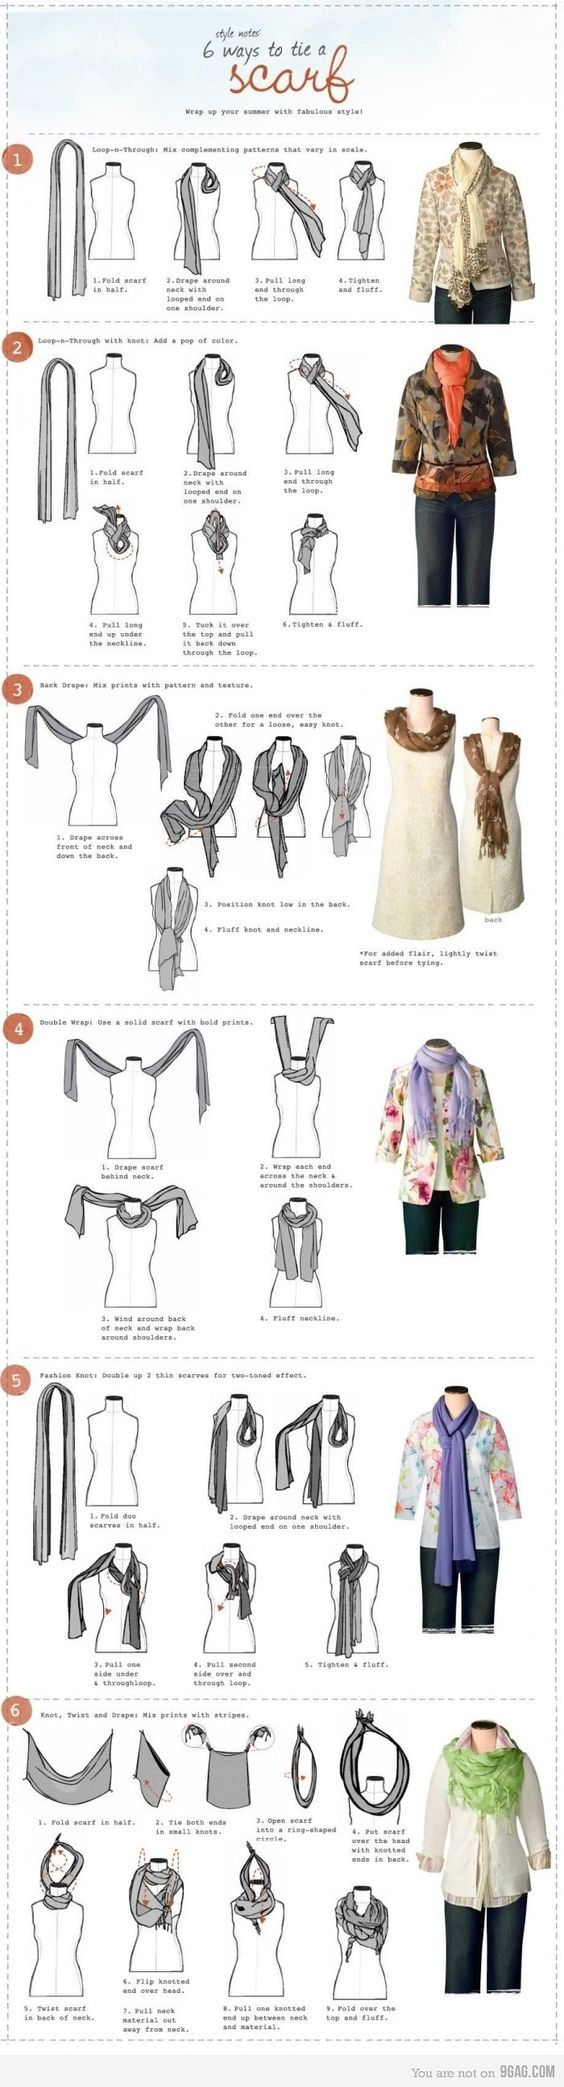 Because you never have enough guides on different ways to tie scarves! 'Tis the season of scarves! -GG-